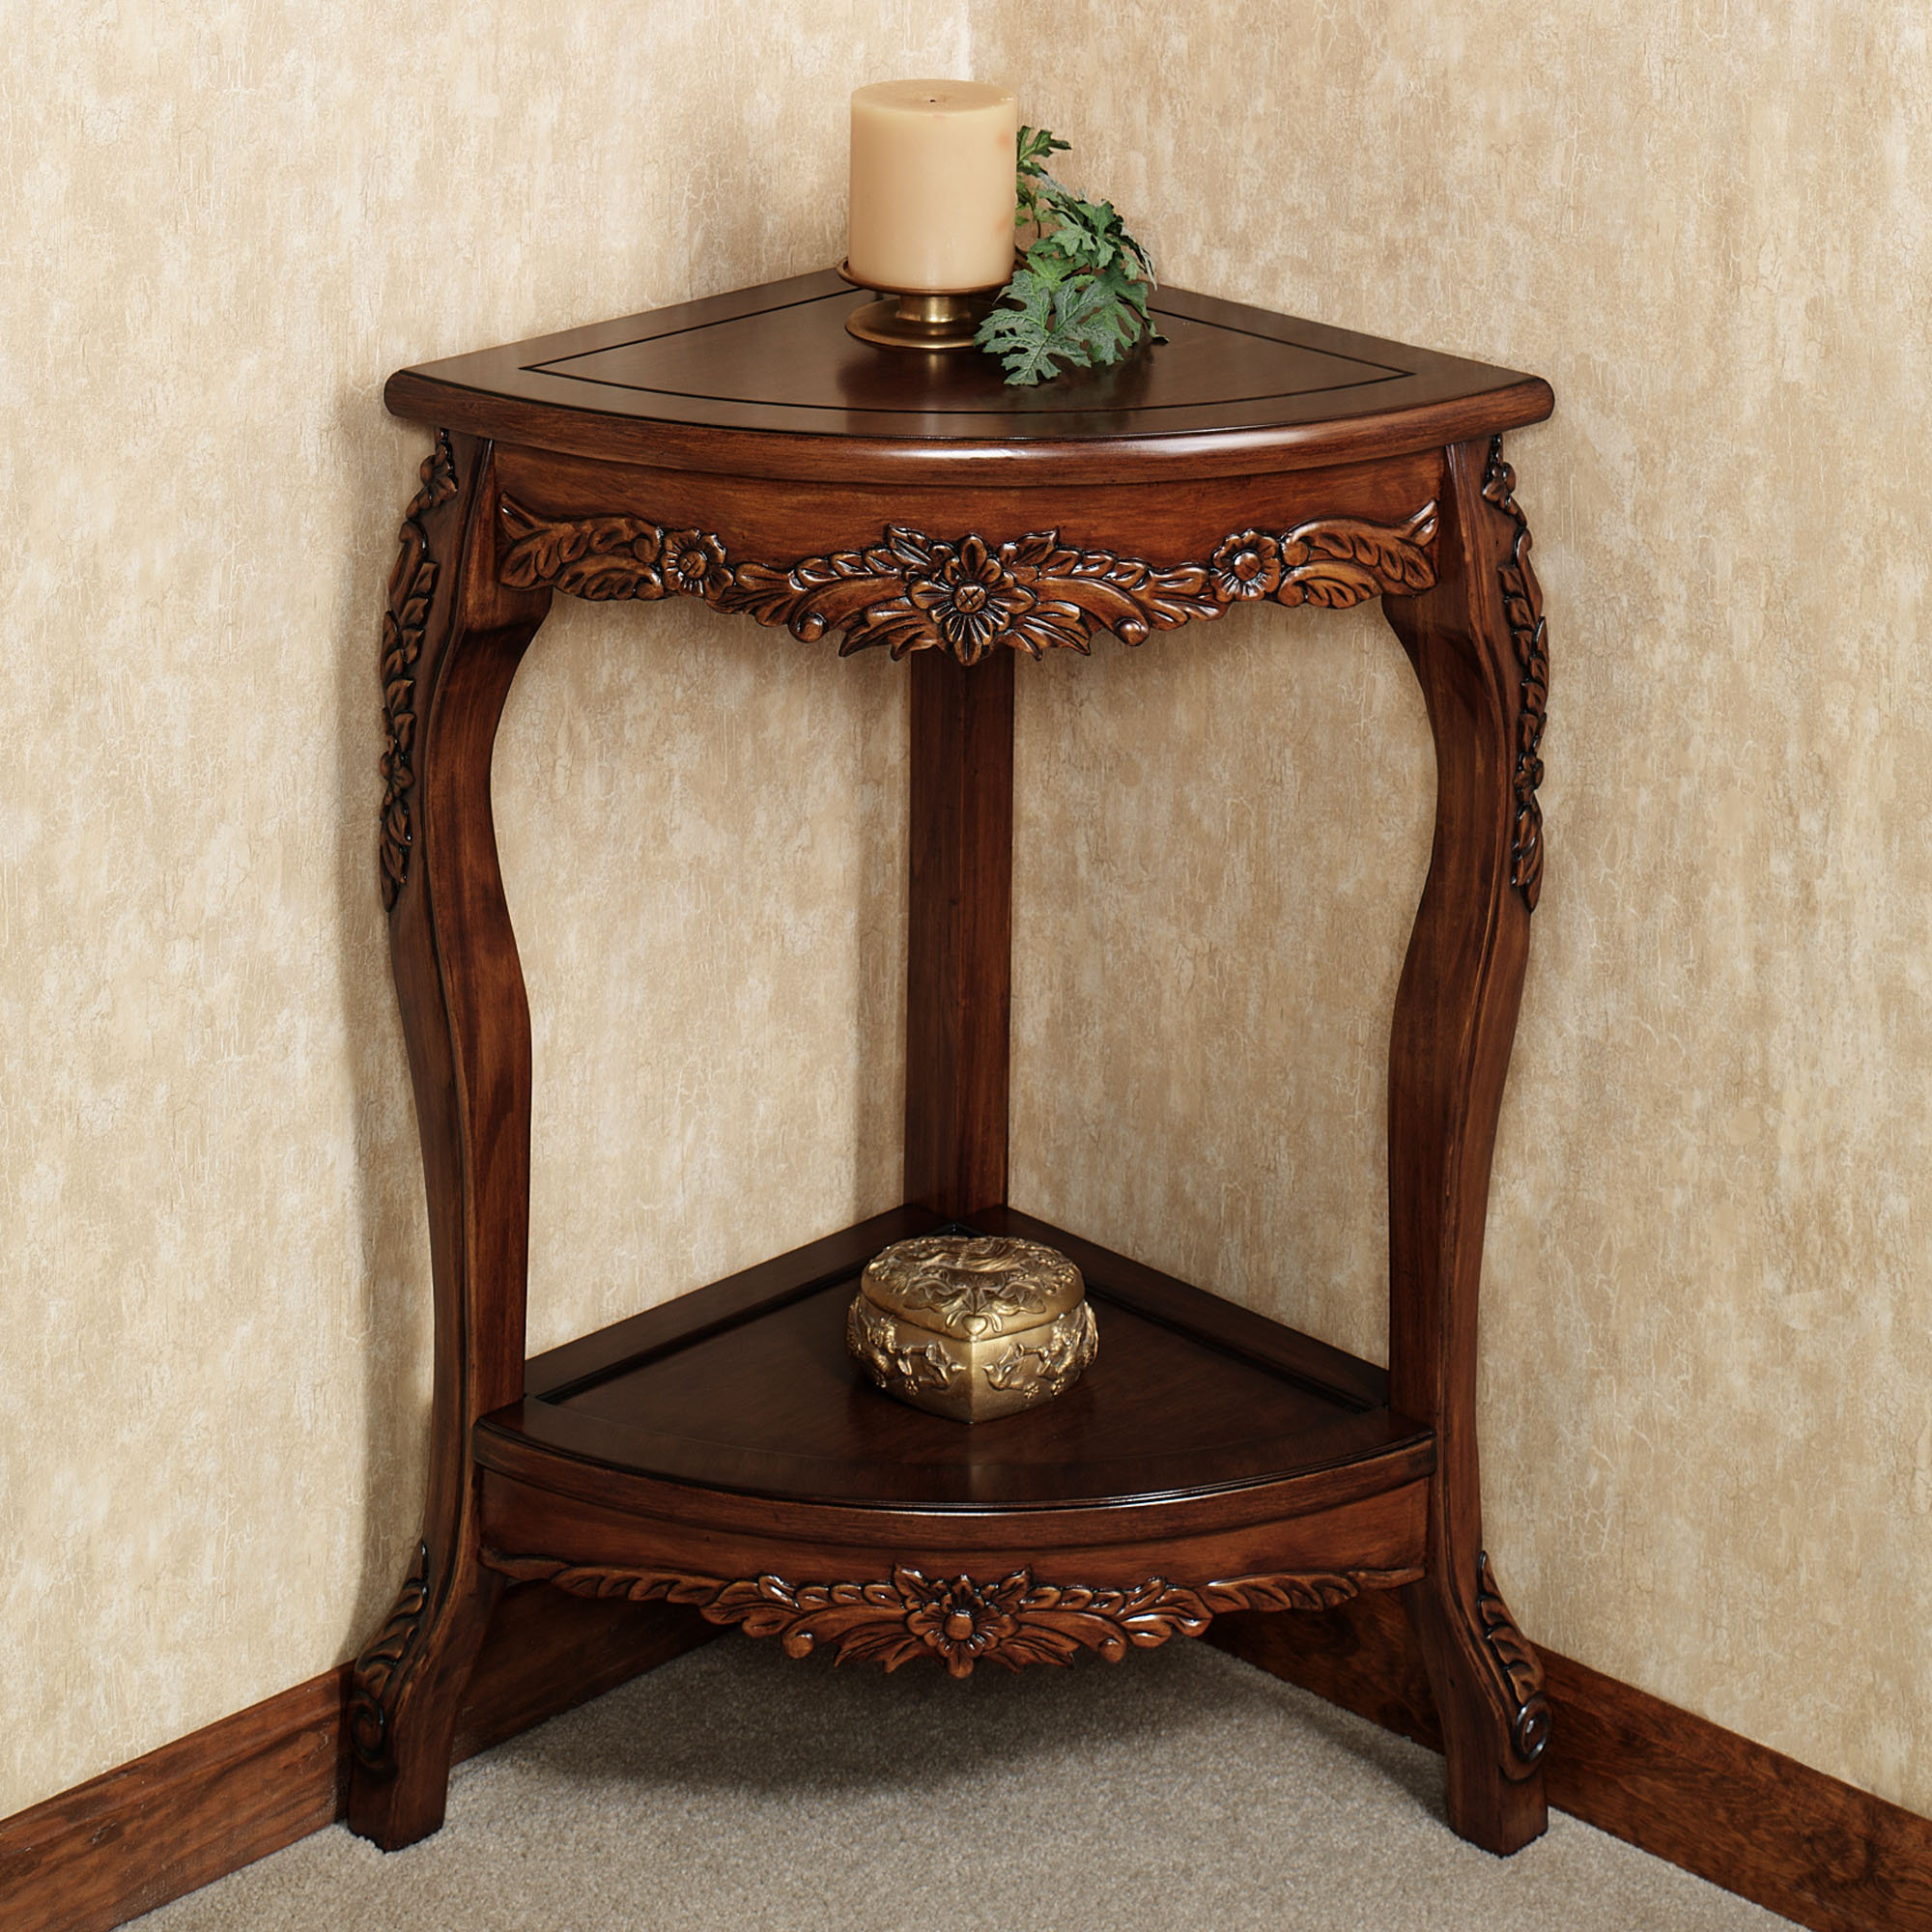 nice and clean look corner accent table the home redesign classy with storage oak circle metal coffee oriental ginger jar lamps vintage style furniture bunnings wicker lounge